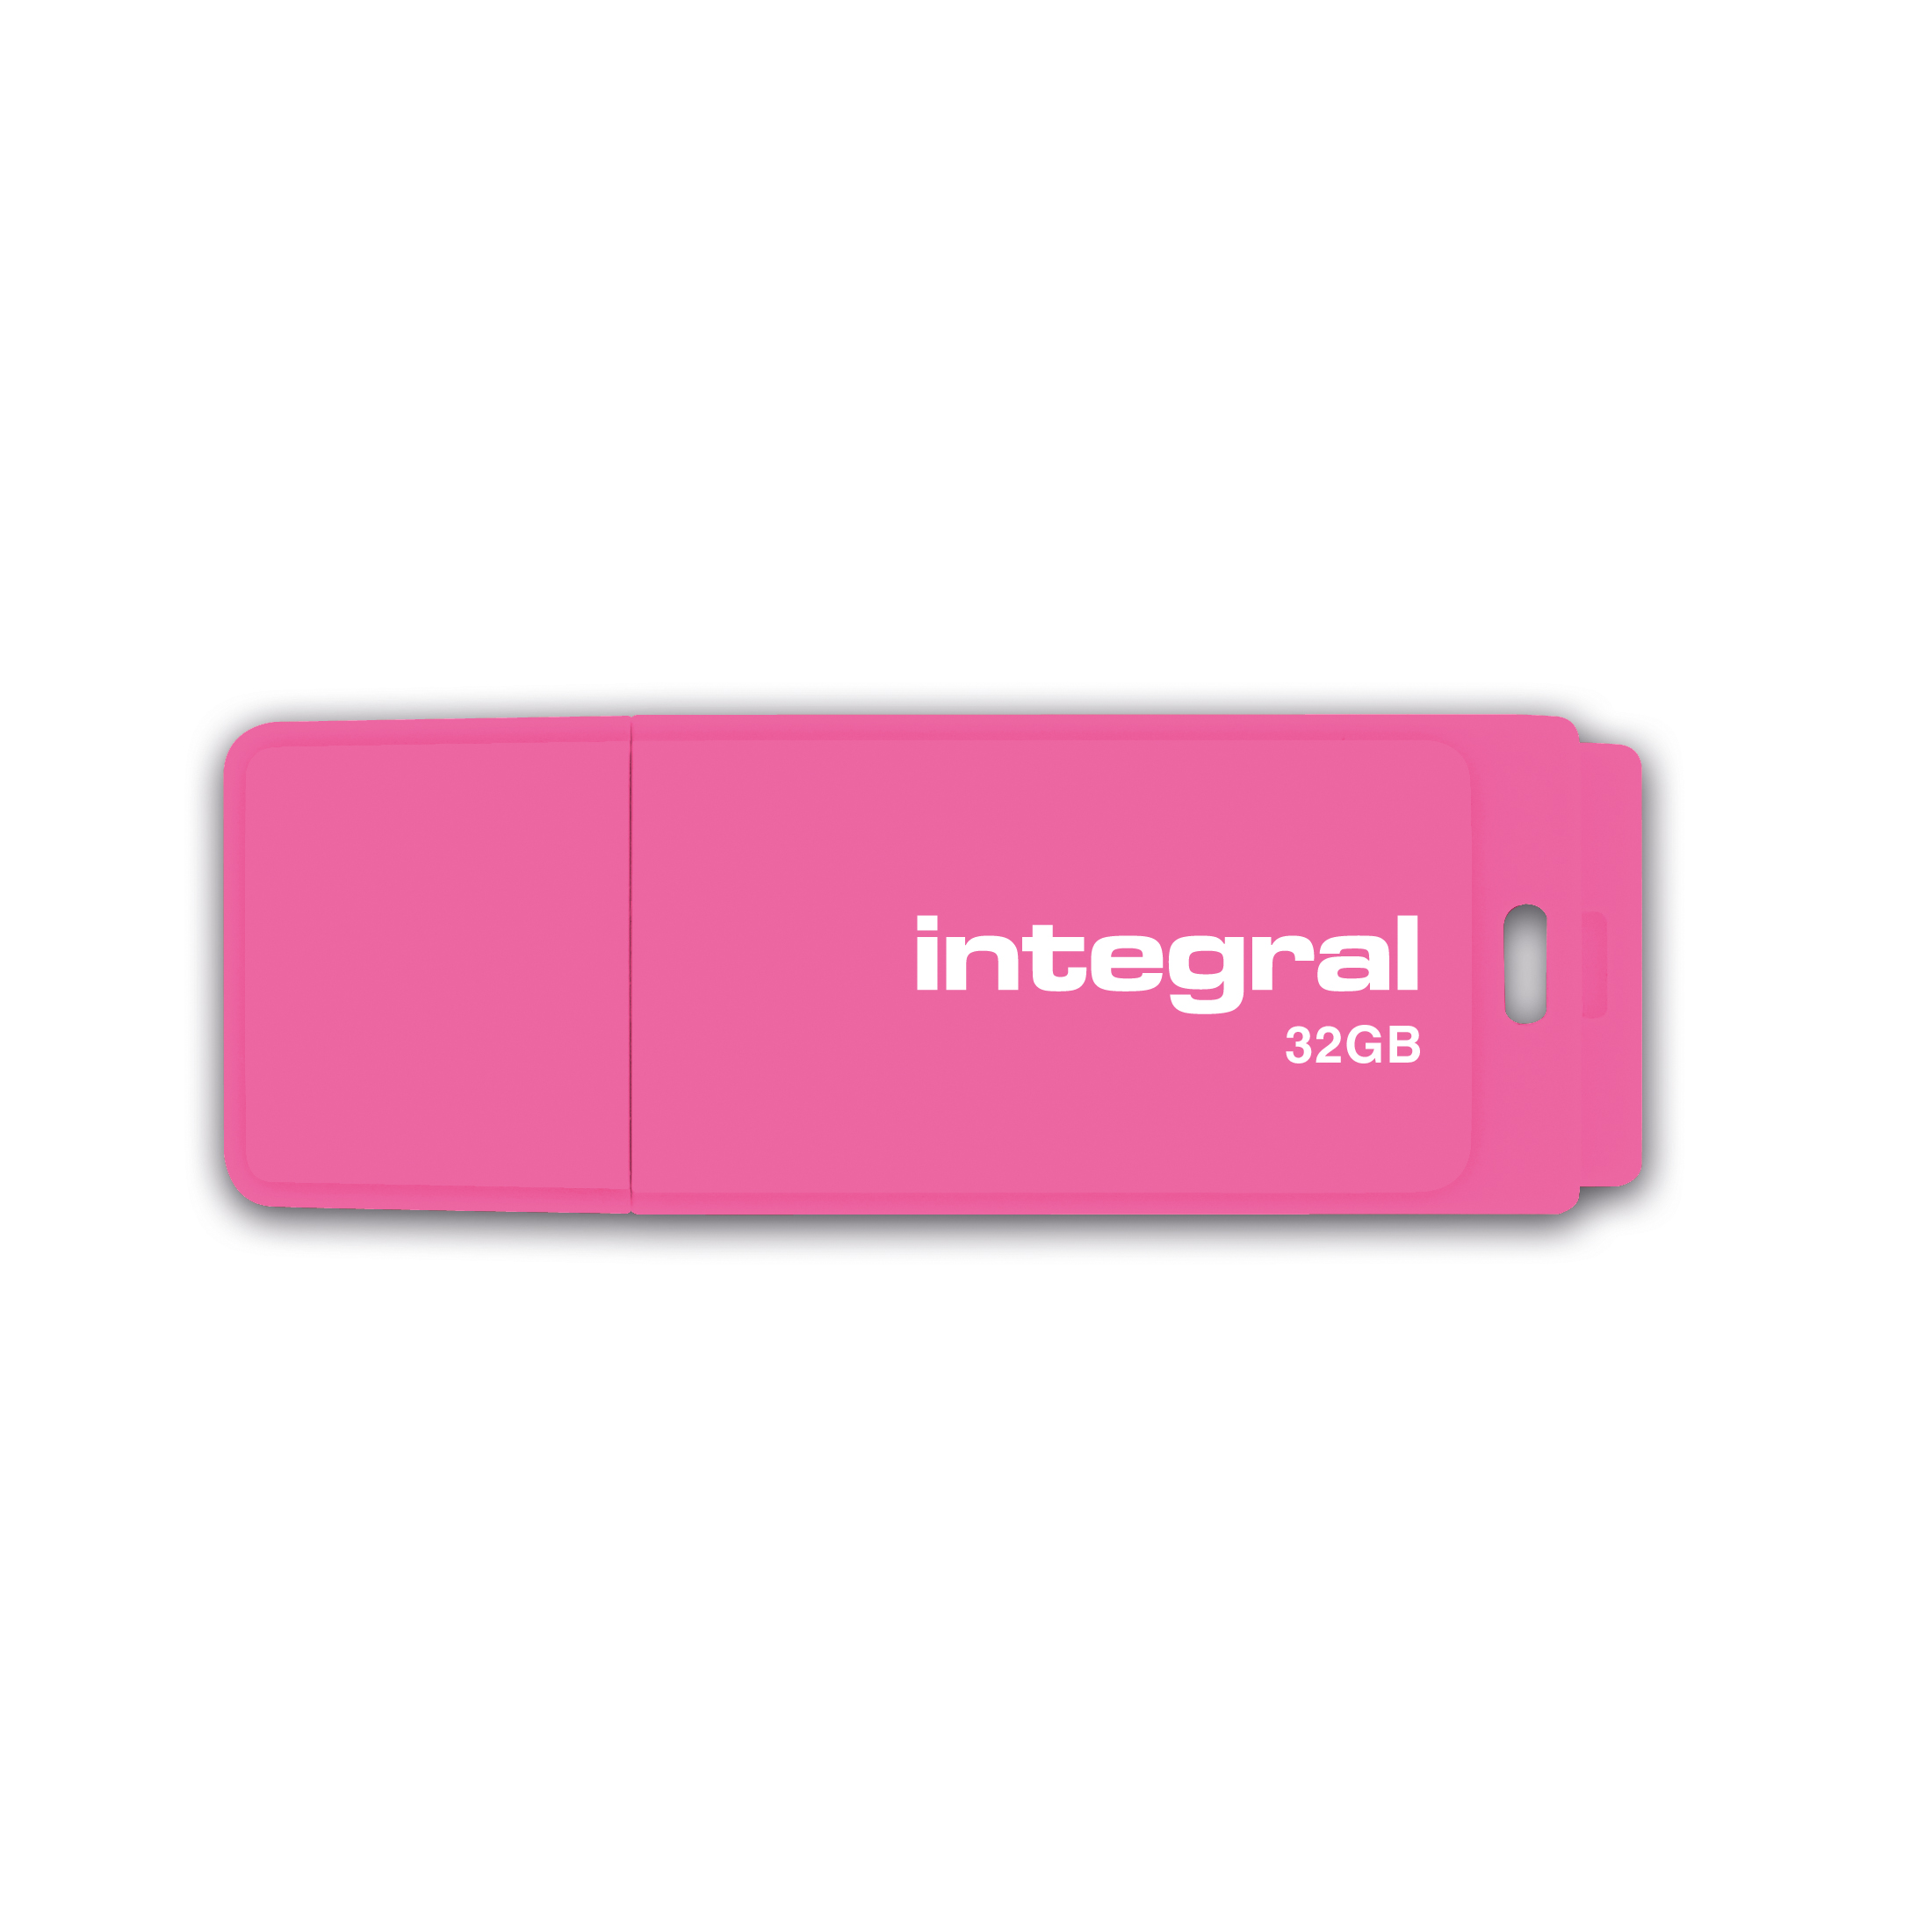 Pen or flash drive Integral Neon USB Drive 2.0 32GB Pink Ref INFD32GBNEONPK